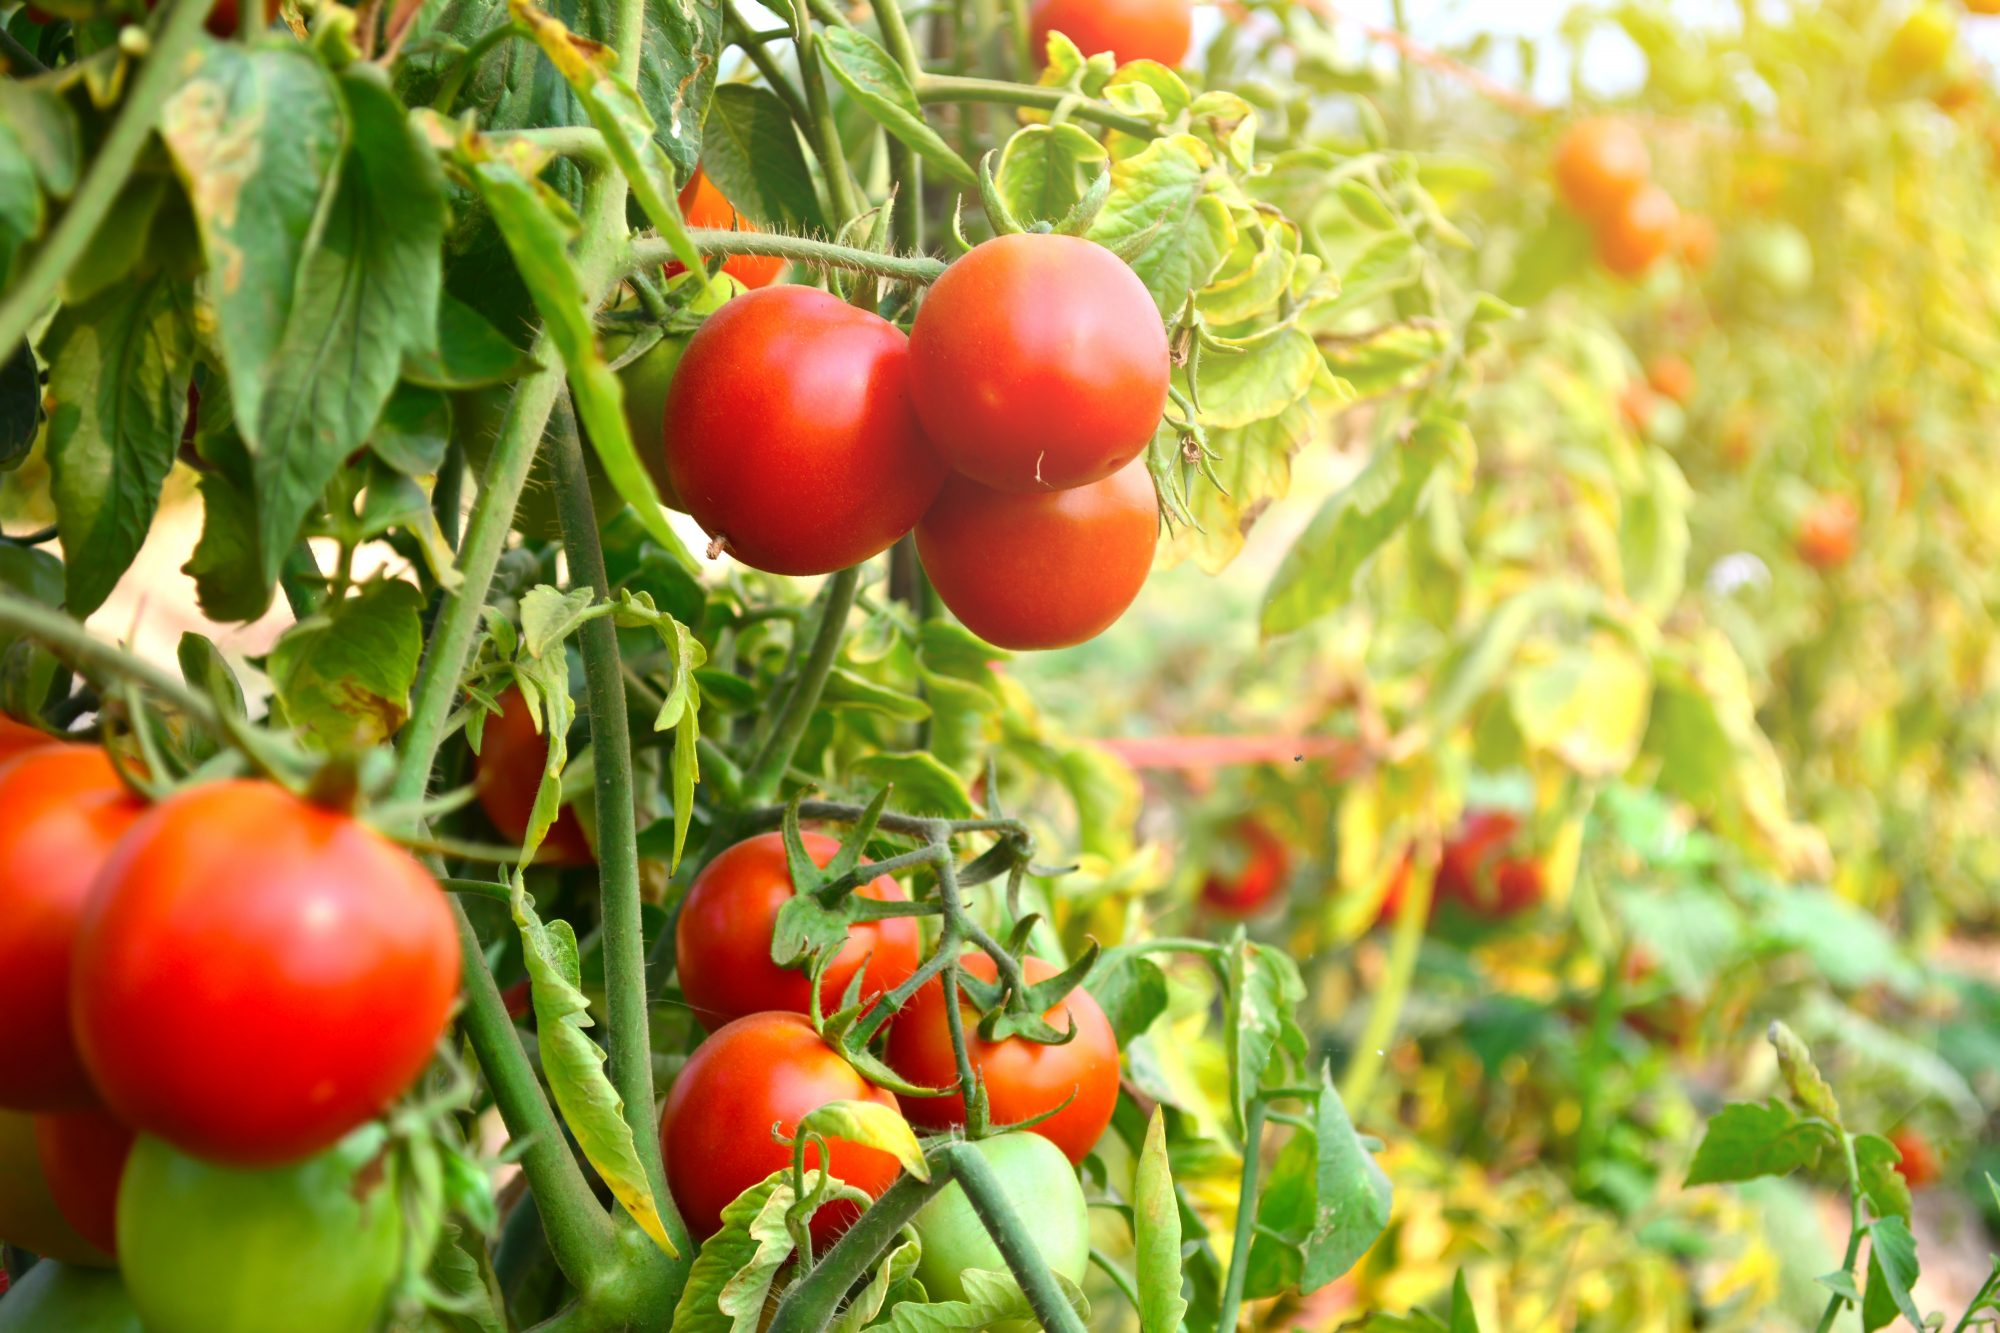 Tomatoes on vines Getty 4/20/20